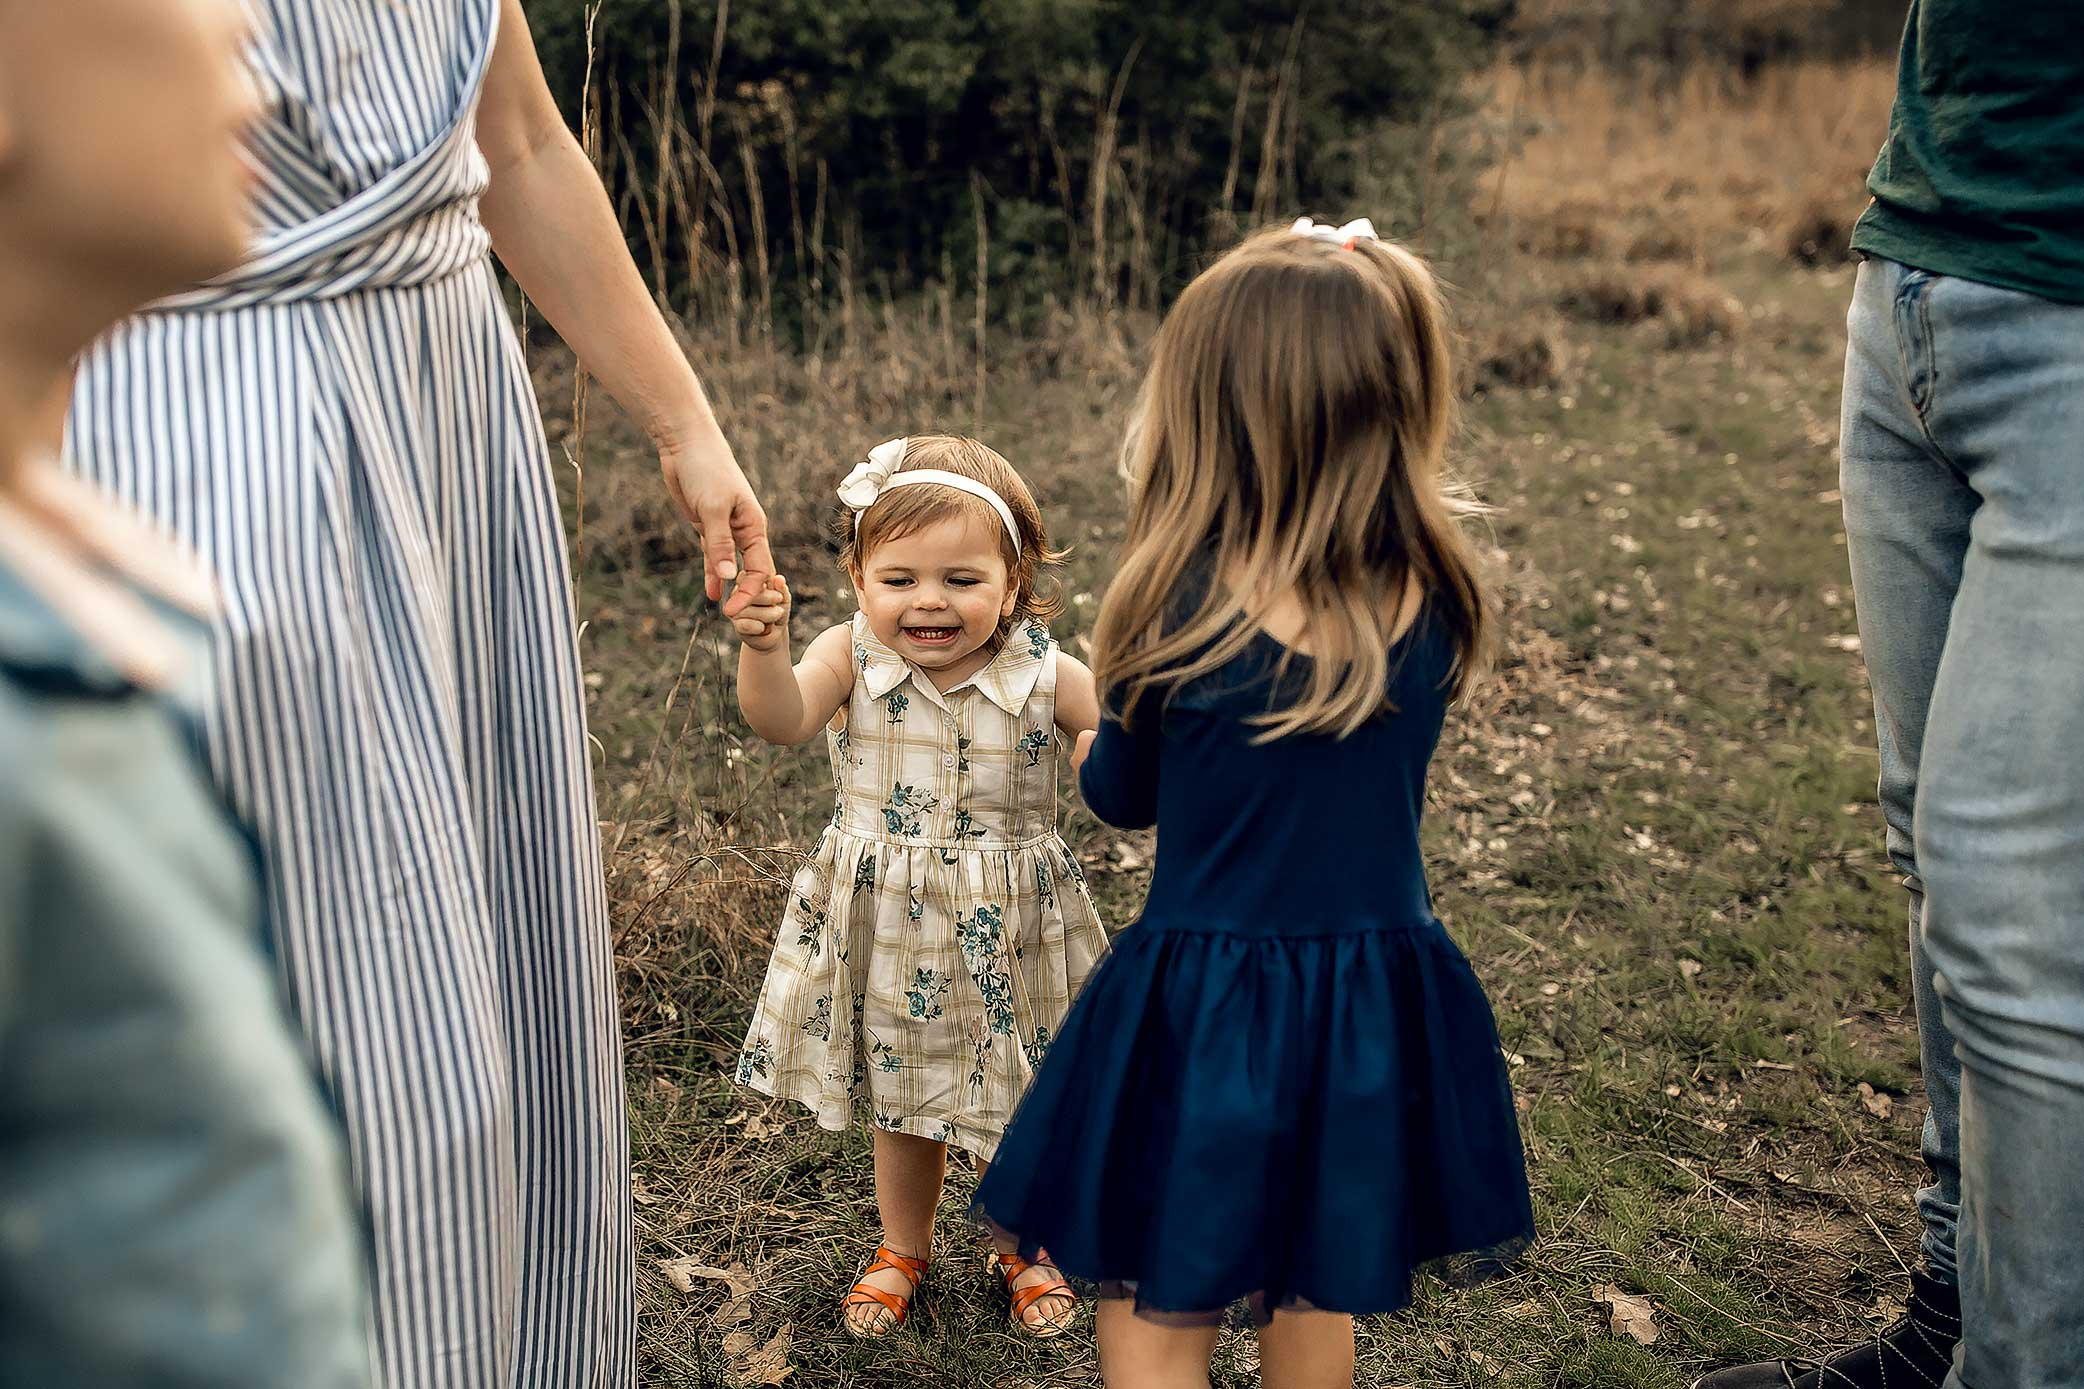 shelby-schiller-photography-lifestyle-family-session-with-3-kids-spring-2019-green-blue-yellow-college-station-50.jpg